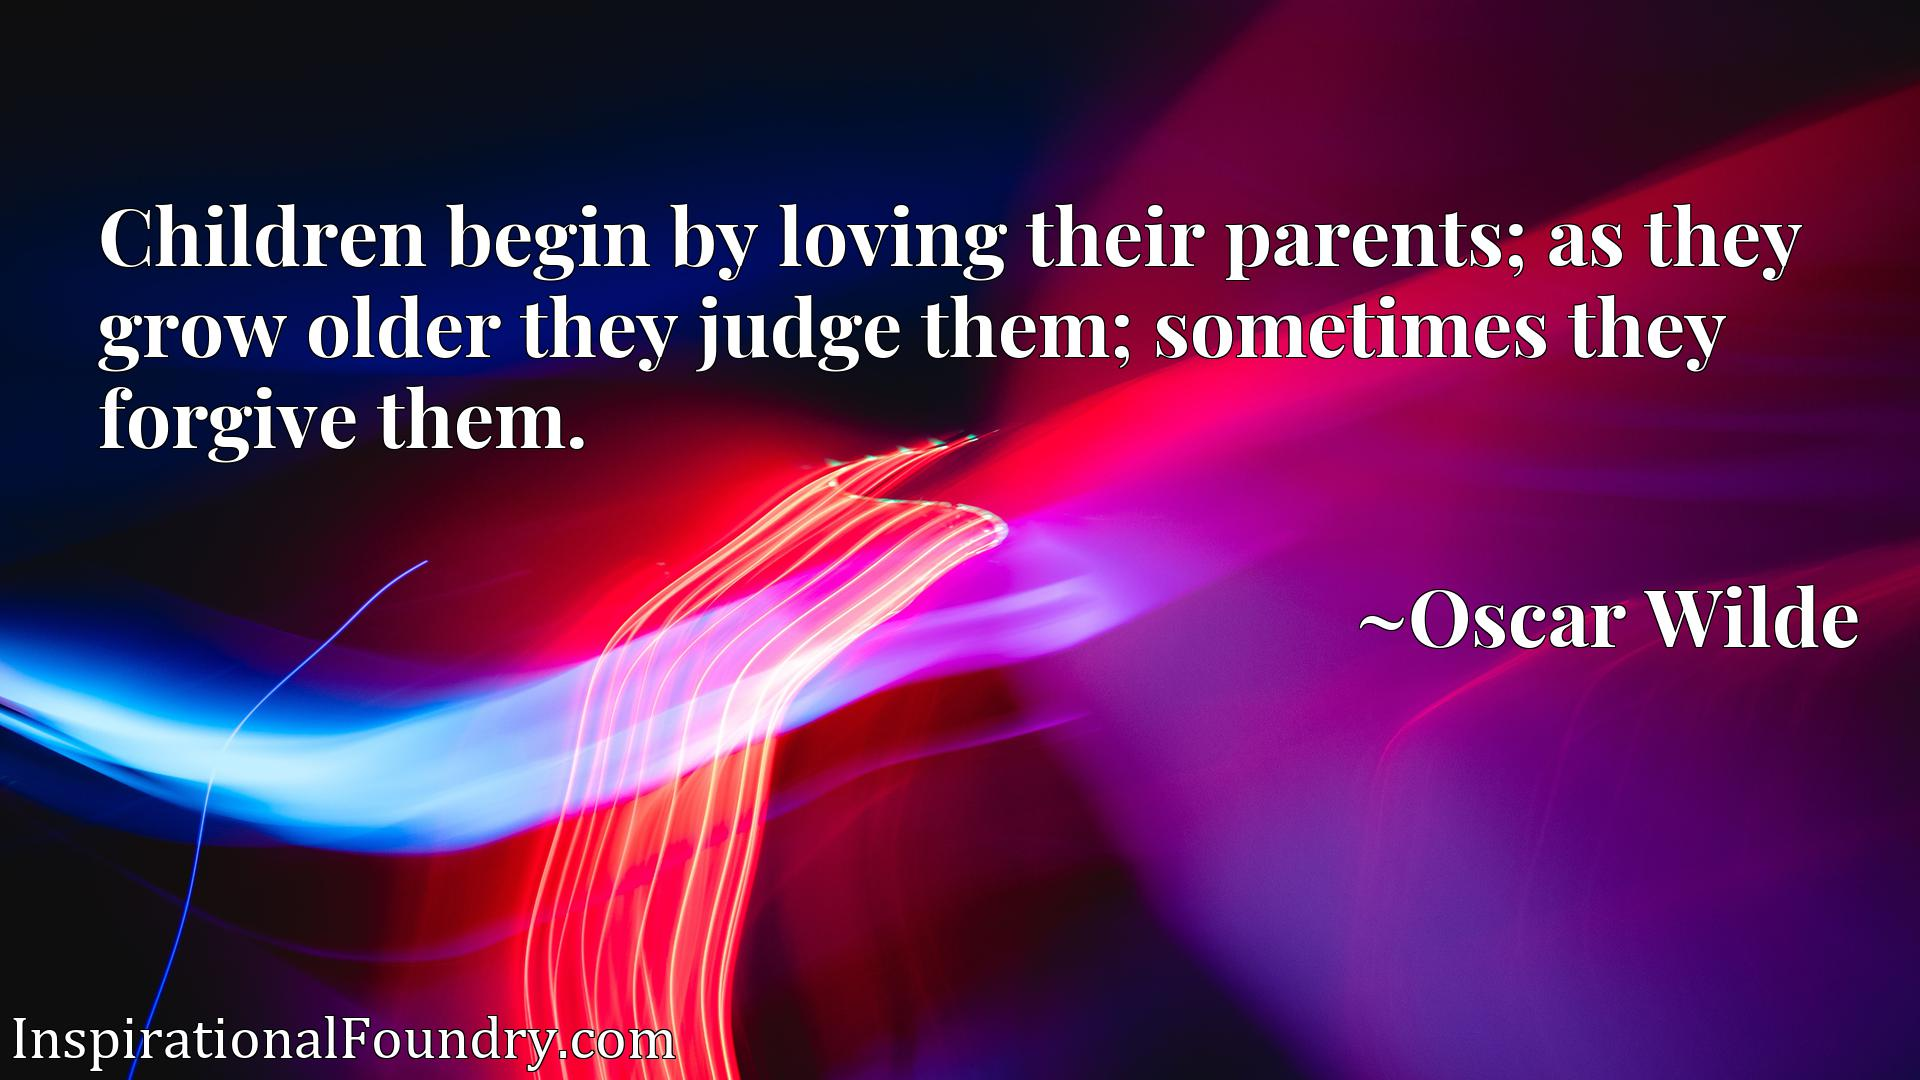 Children begin by loving their parents; as they grow older they judge them; sometimes they forgive them.